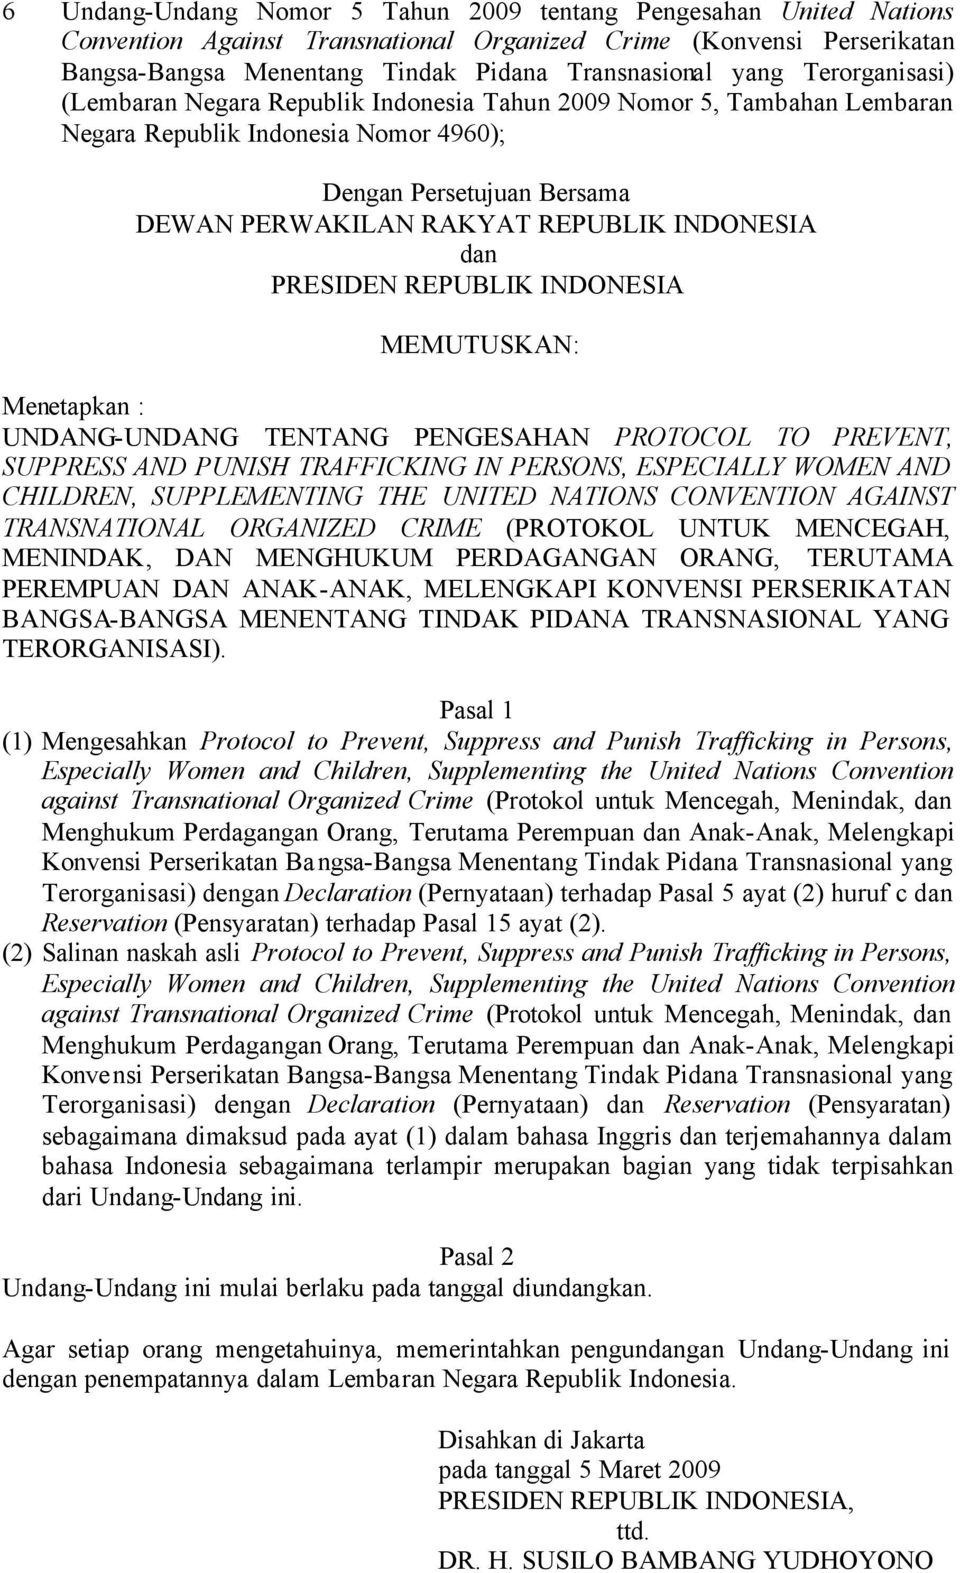 dan PRESIDEN REPUBLIK INDONESIA MEMUTUSKAN: Menetapkan : UNDANG-UNDANG TENTANG PENGESAHAN PROTOCOL TO PREVENT, SUPPRESS AND PUNISH TRAFFICKING IN PERSONS, ESPECIALLY WOMEN AND CHILDREN, SUPPLEMENTING